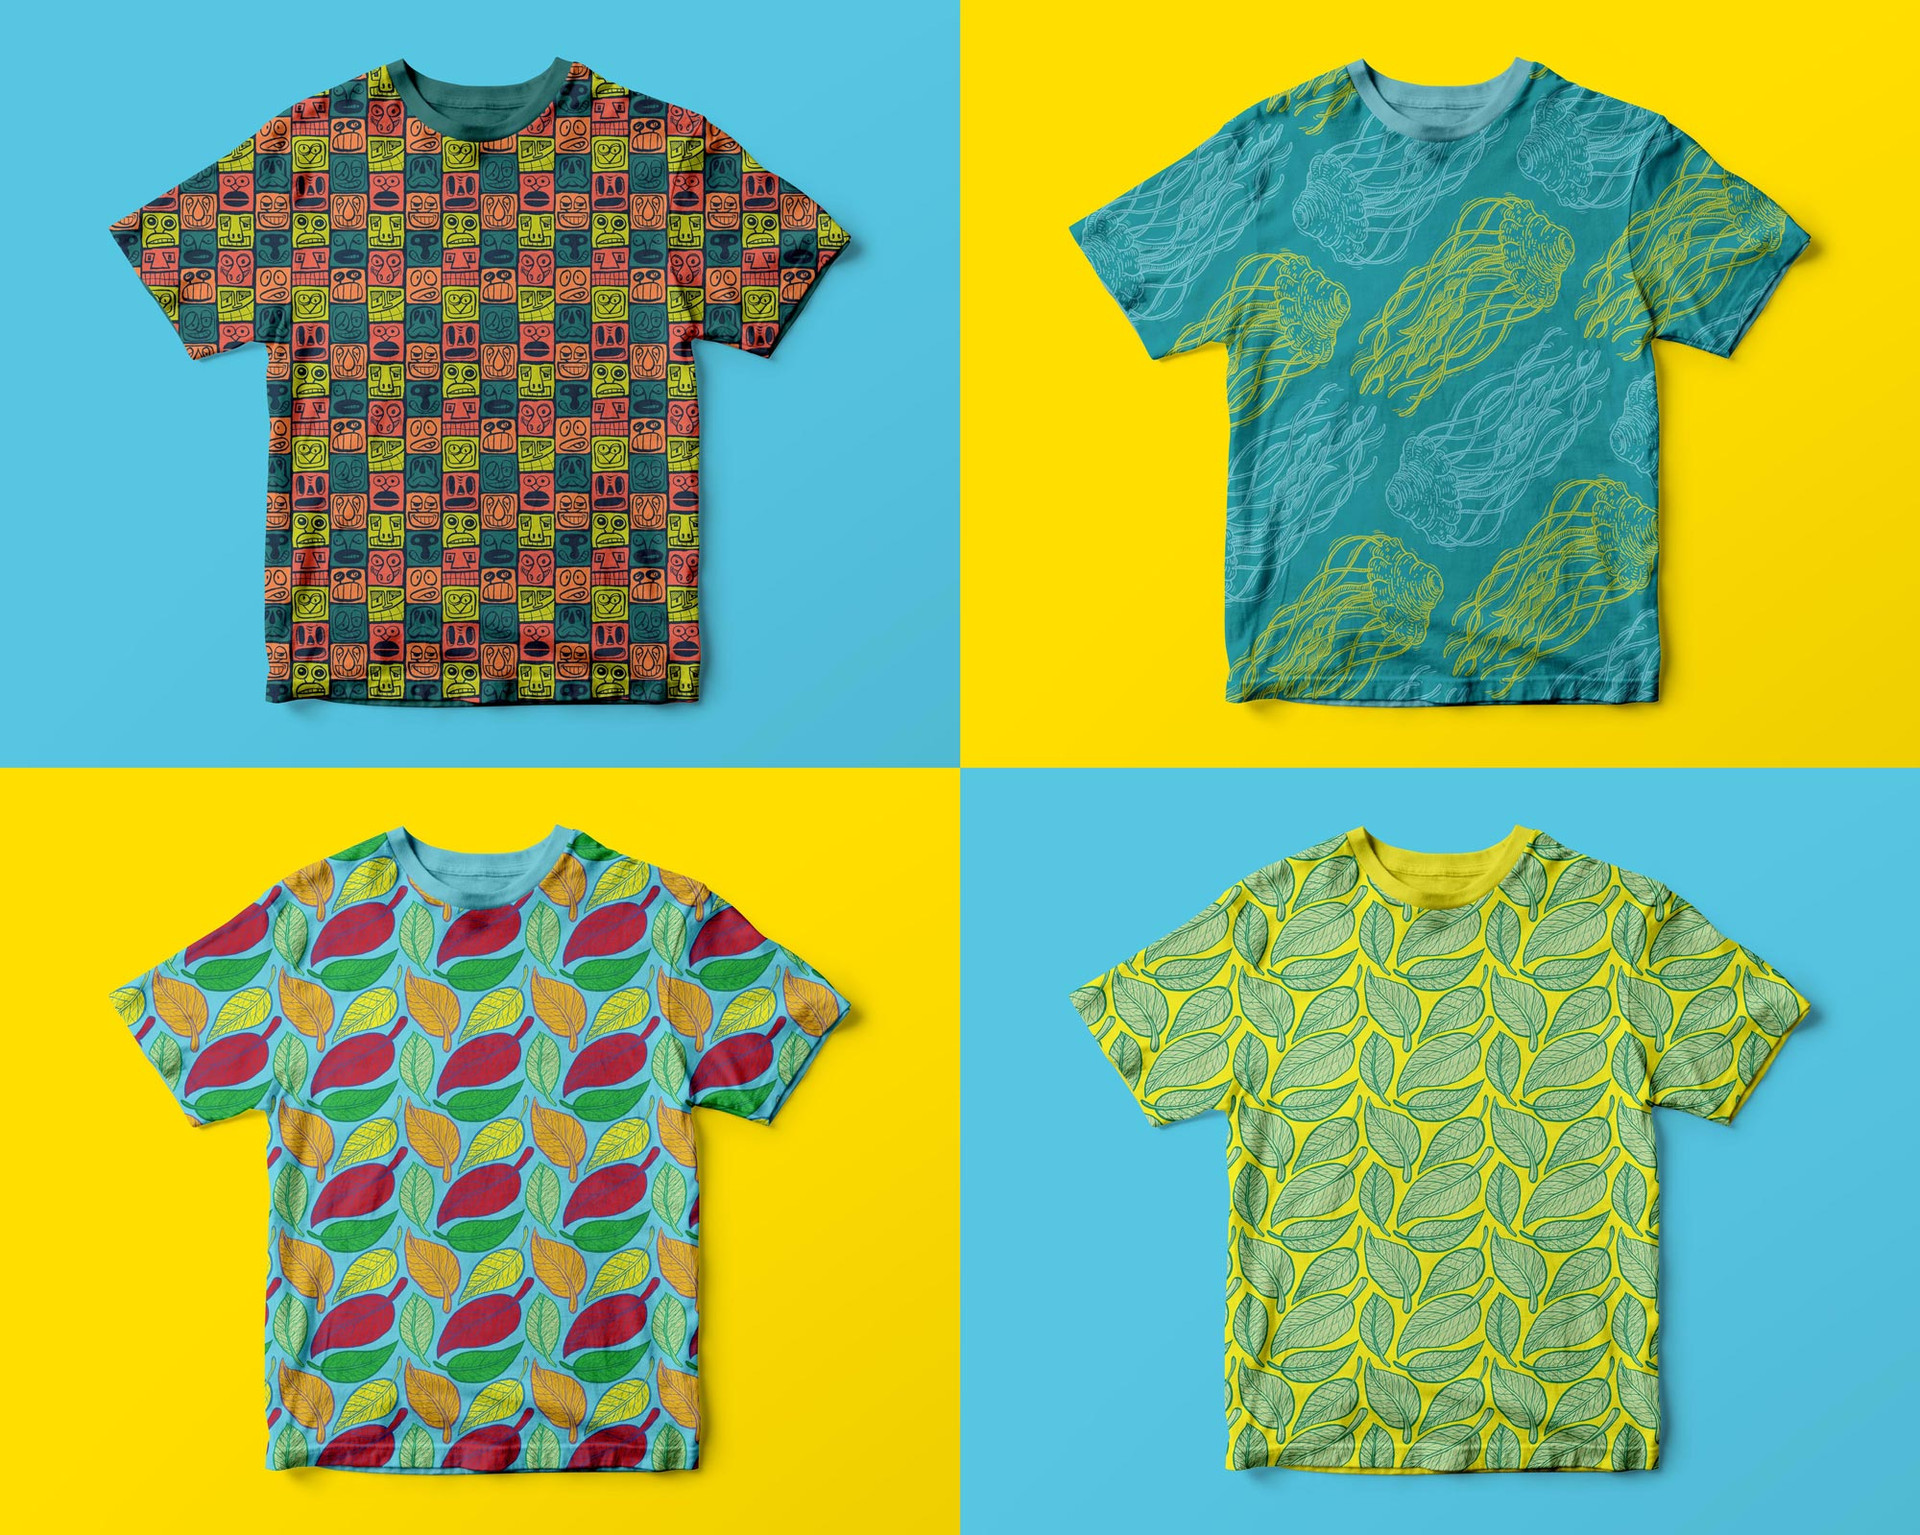 All-over t-shirt prints